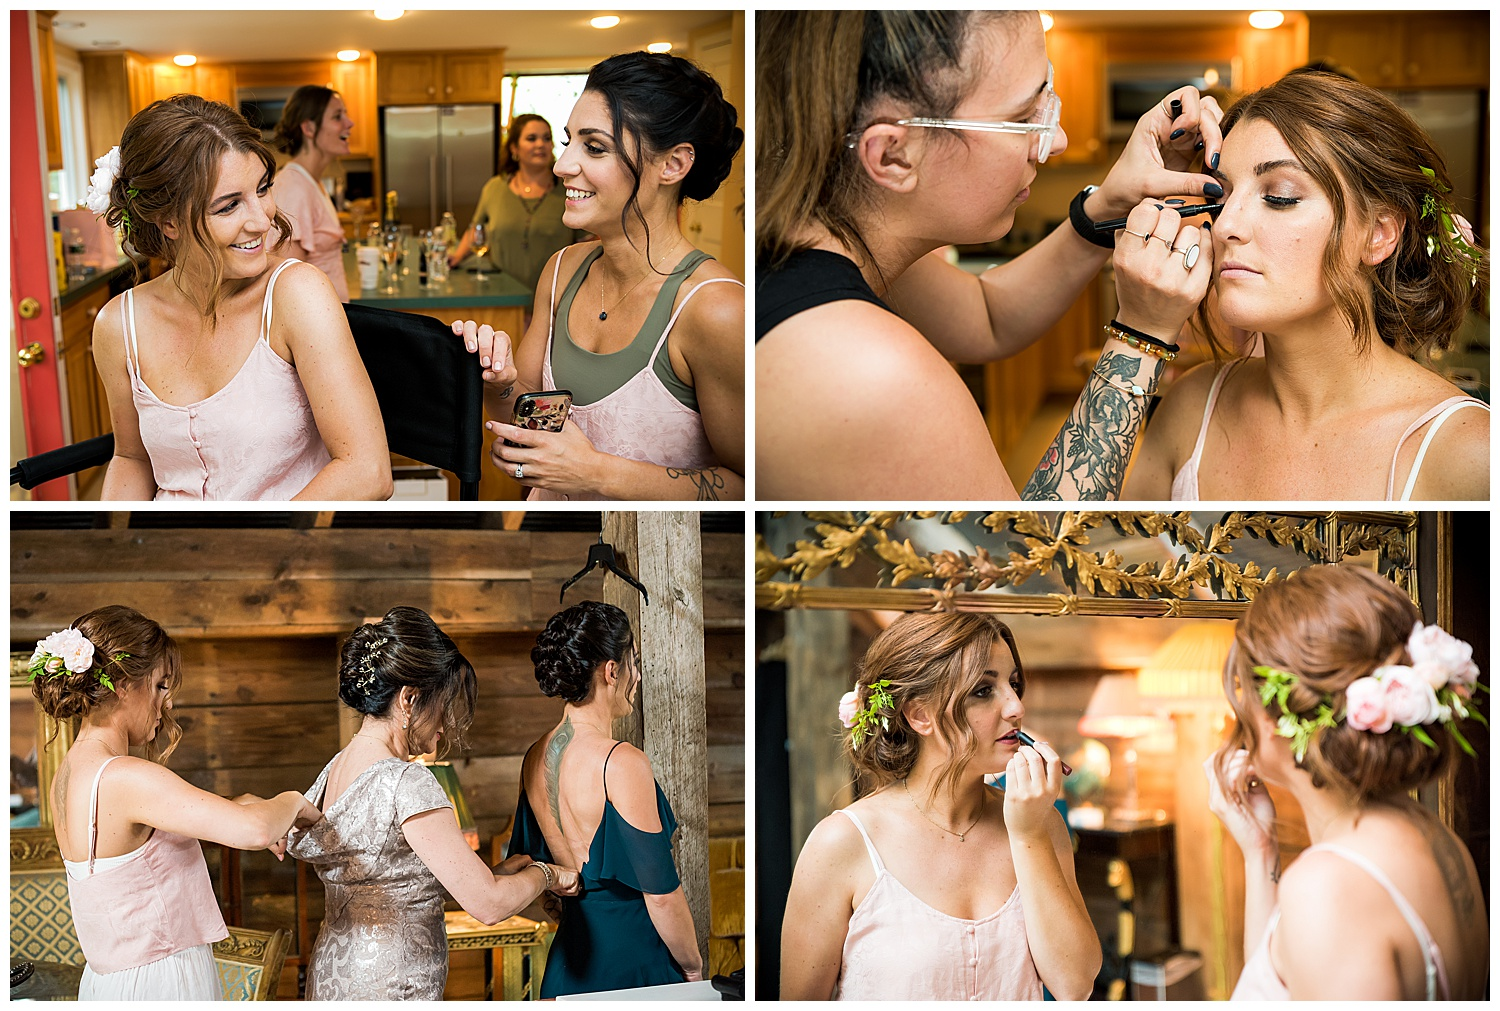 Valley View Farm Wedding - Getting Ready Photos